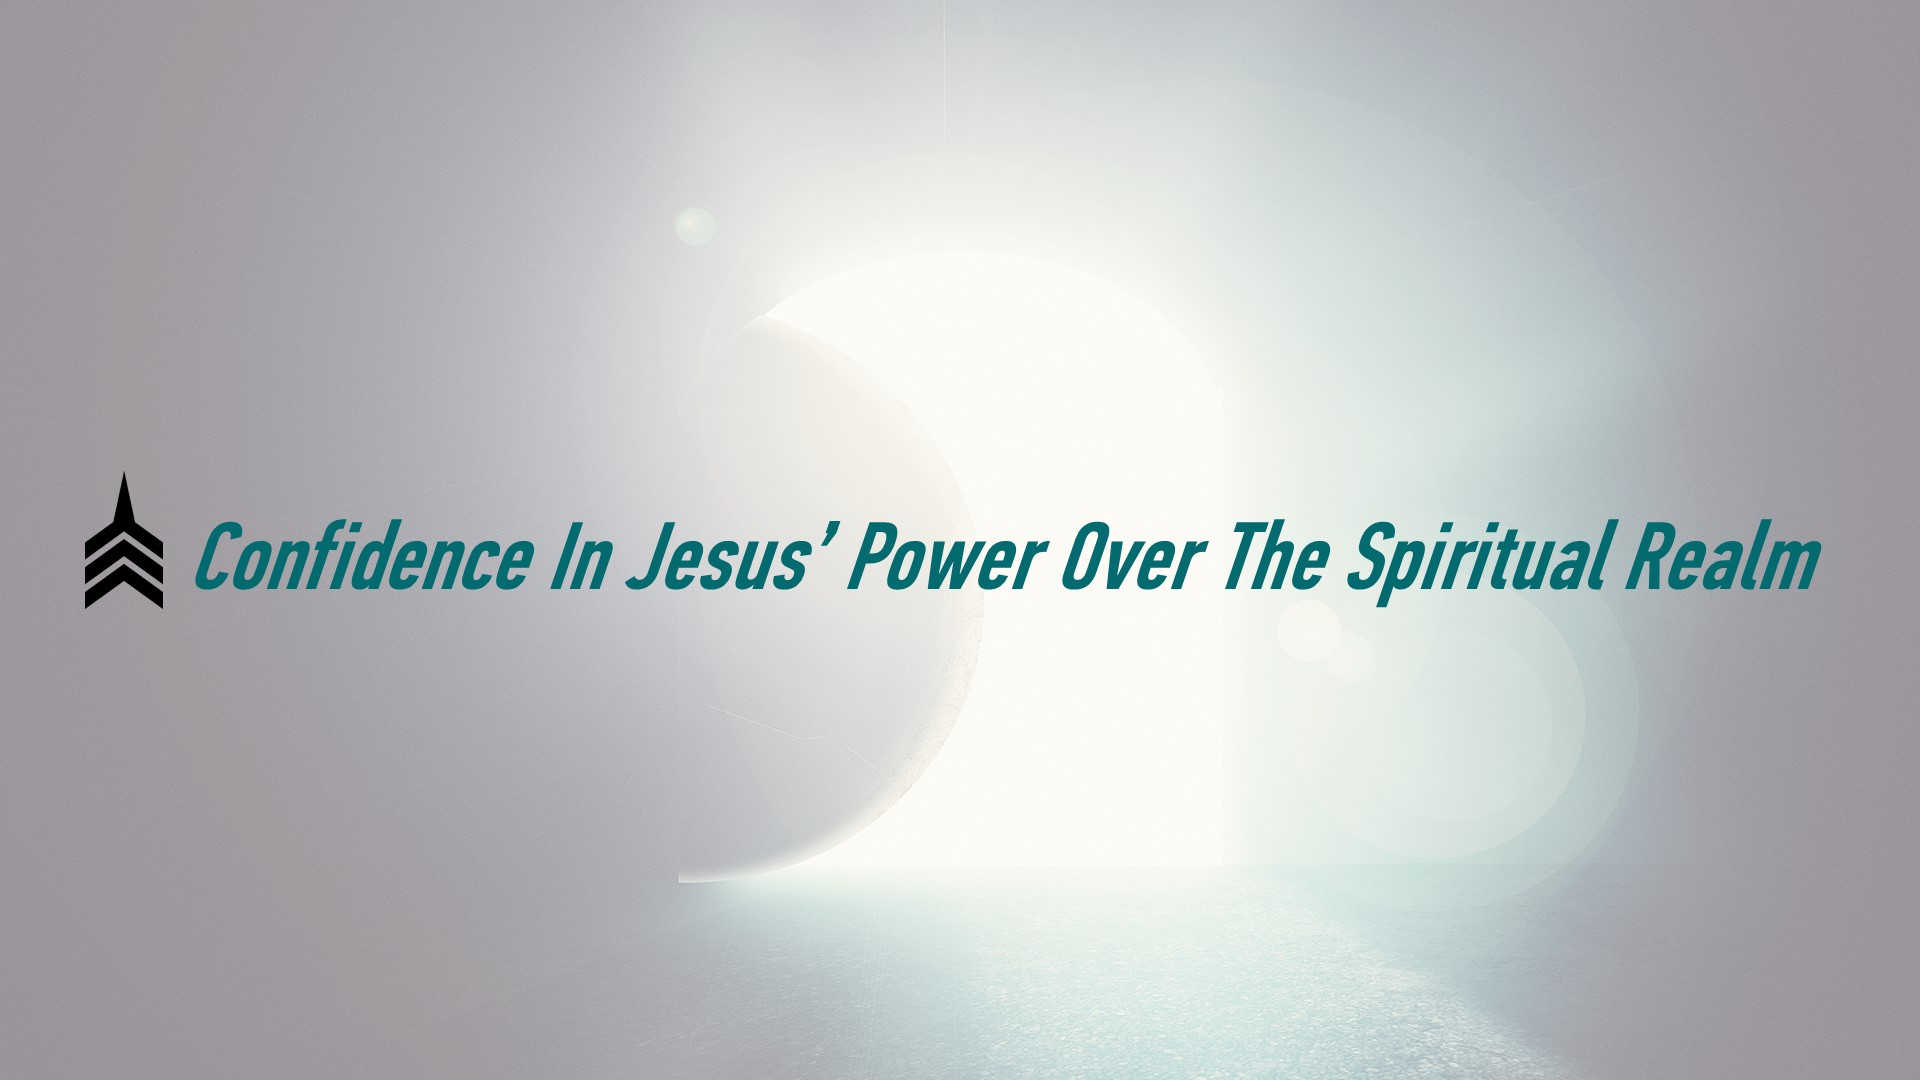 20180701 Confidence In Jesus' Power Over The Spiritual Realm.JPG